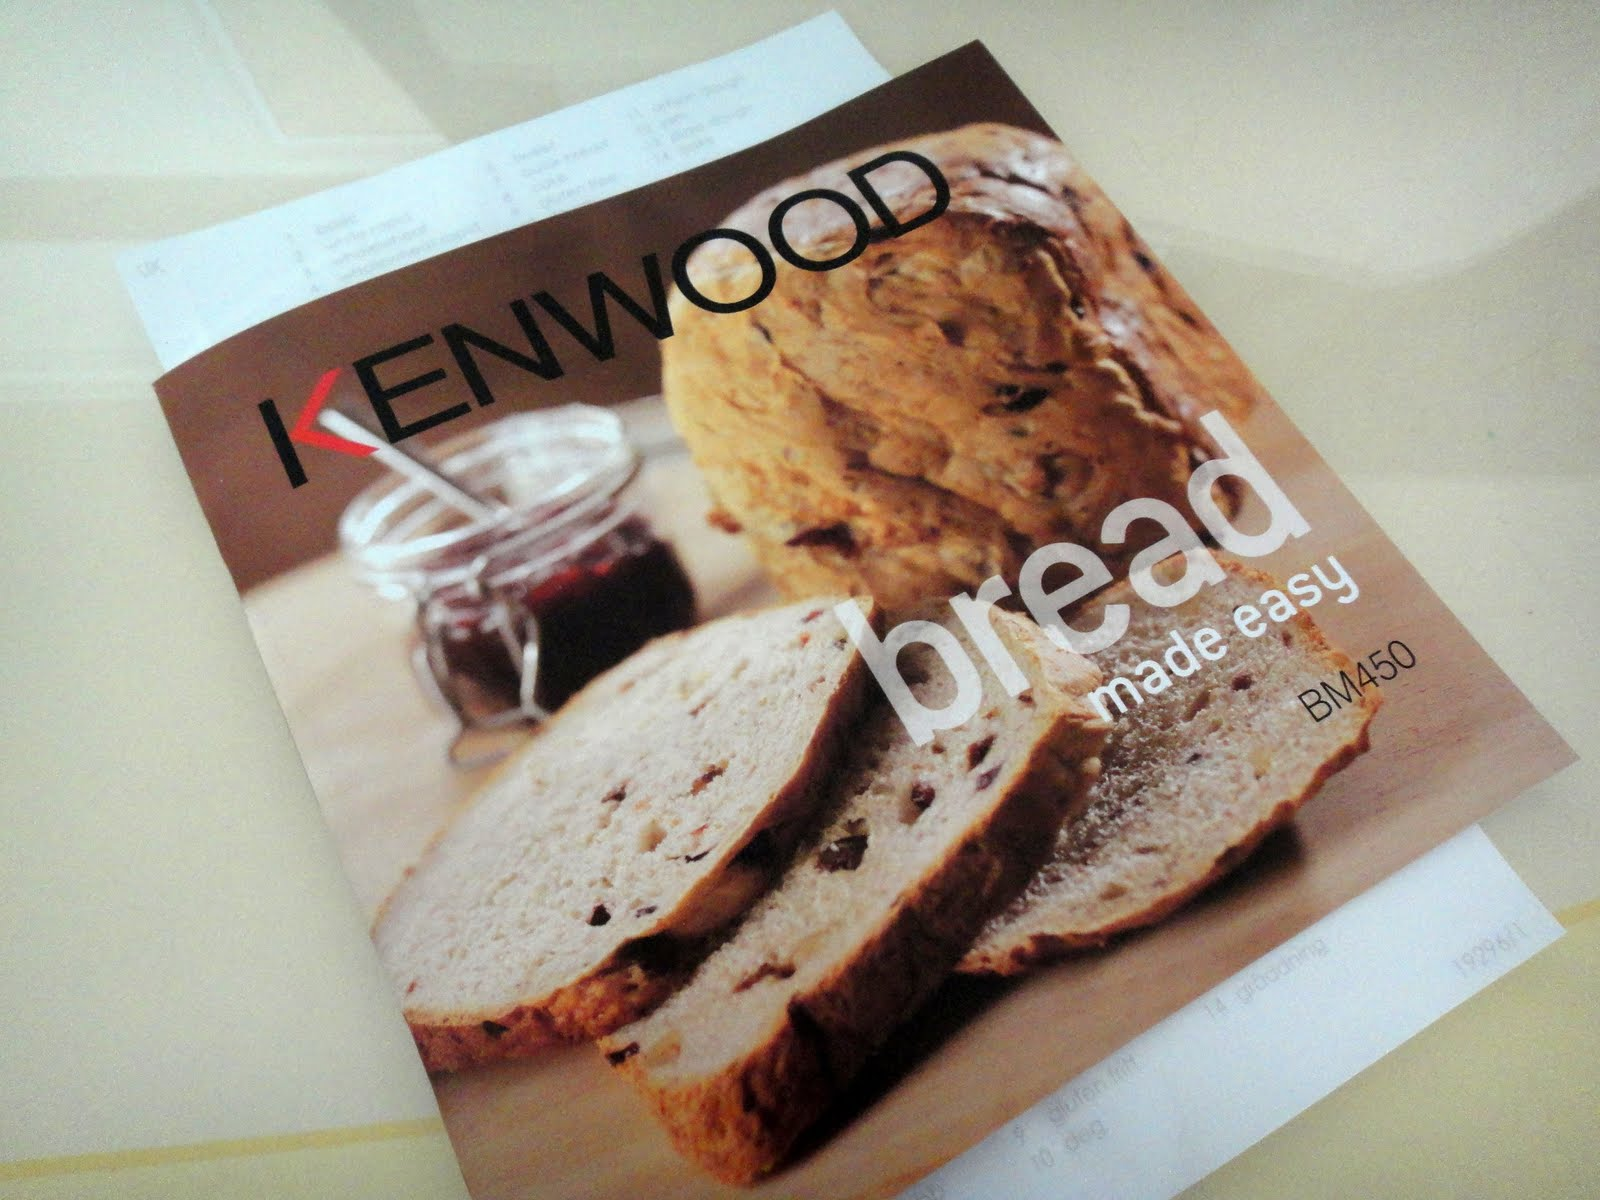 My food and travel blog the great kenwood breadmaking challenge the breadmaker comes with a recipe book with 20 bread dough and jam recipes from rustic bread to brioche to croissant dough to pizza dough to a variety of forumfinder Gallery